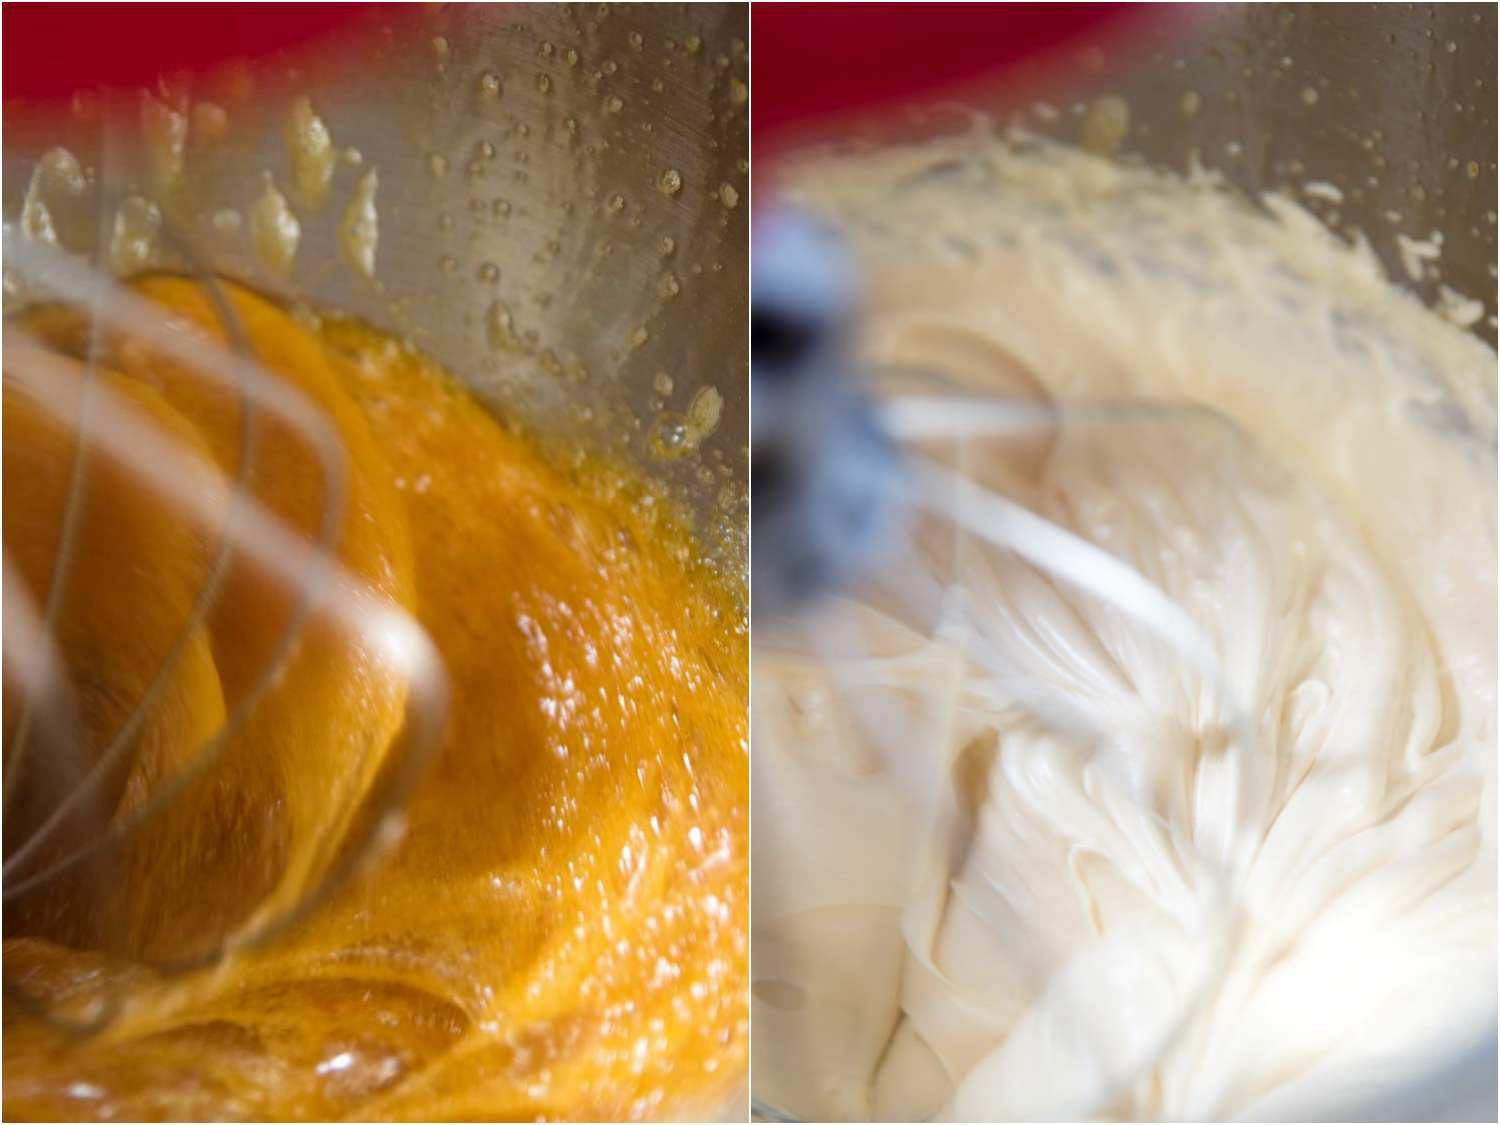 semifreddo base before and after aeration